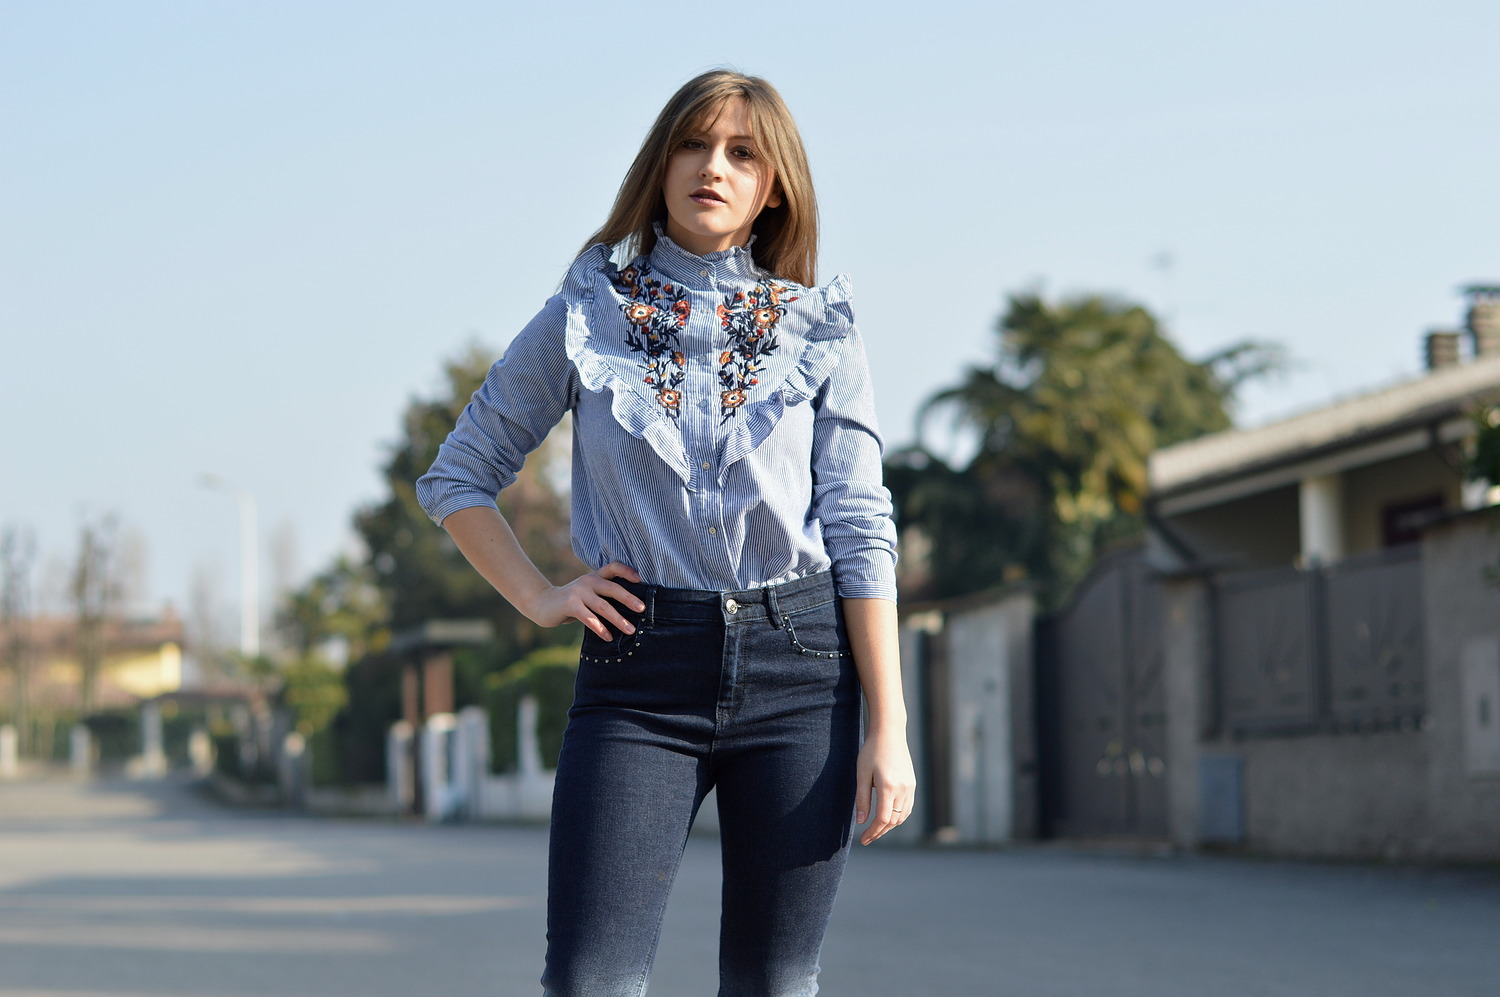 LOOK OF THE DAY ruffle blouse u0026 high waisted jeans. - The Dress Sense